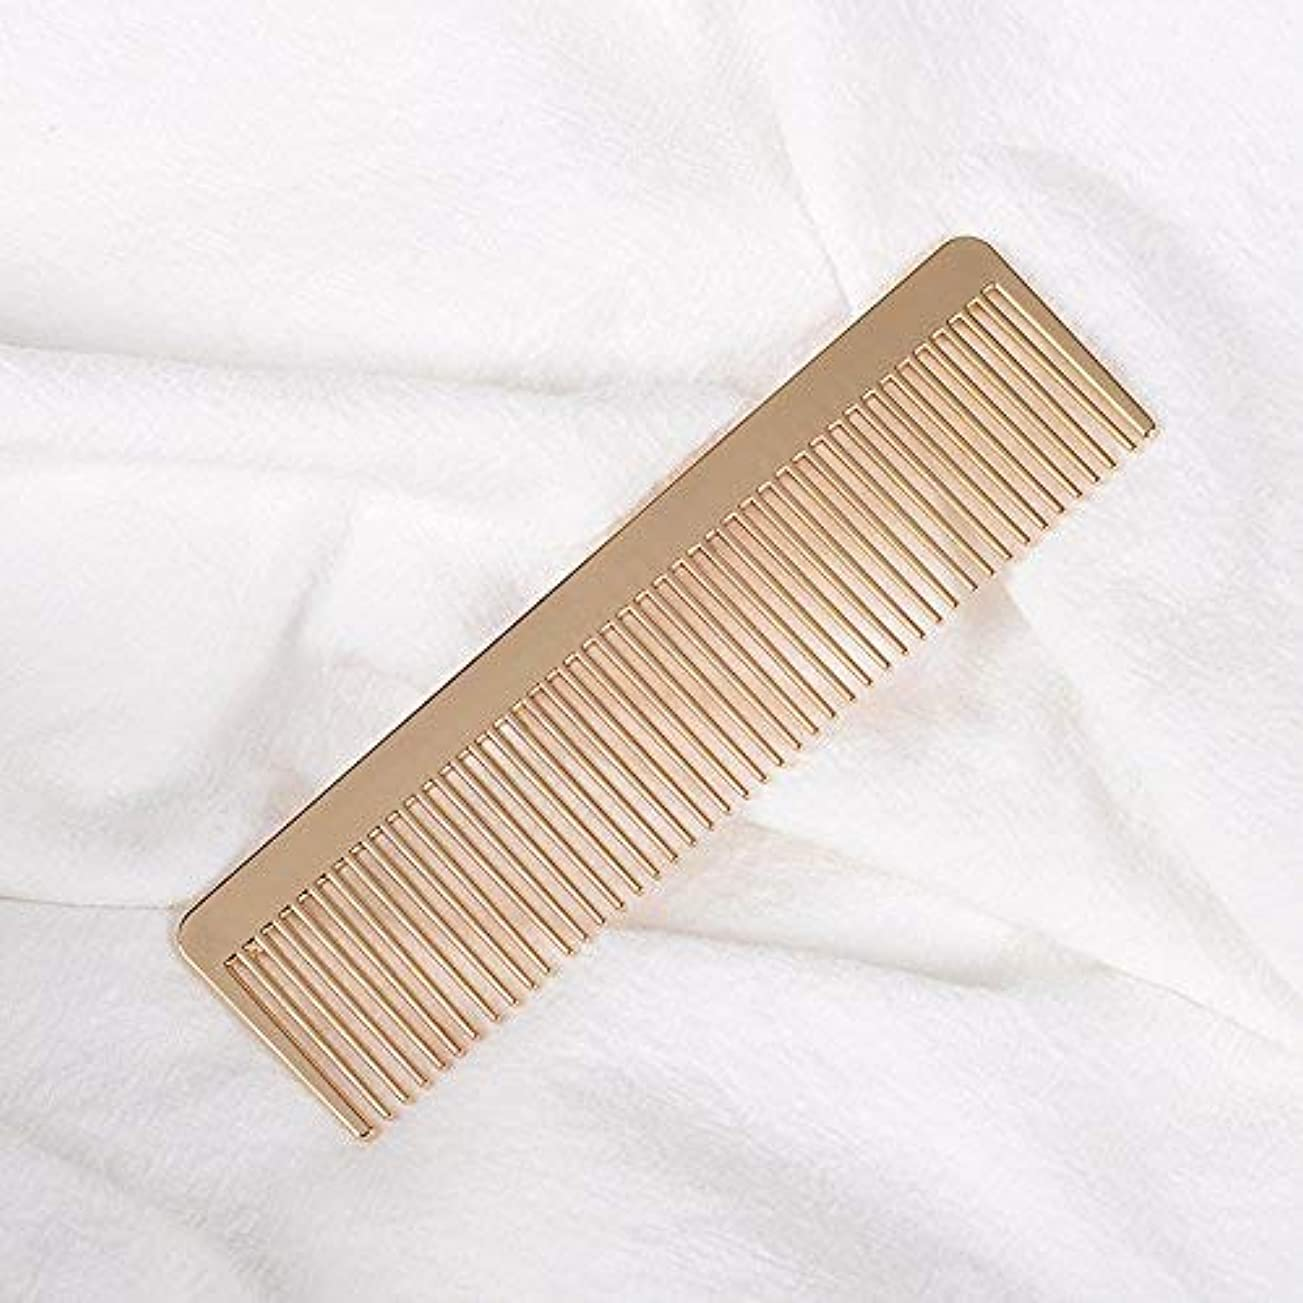 使役補助蓋Grtdrm Portable Metal Comb, Minimalist Pocket Golden Hair Comb for Women Men Unisex [並行輸入品]